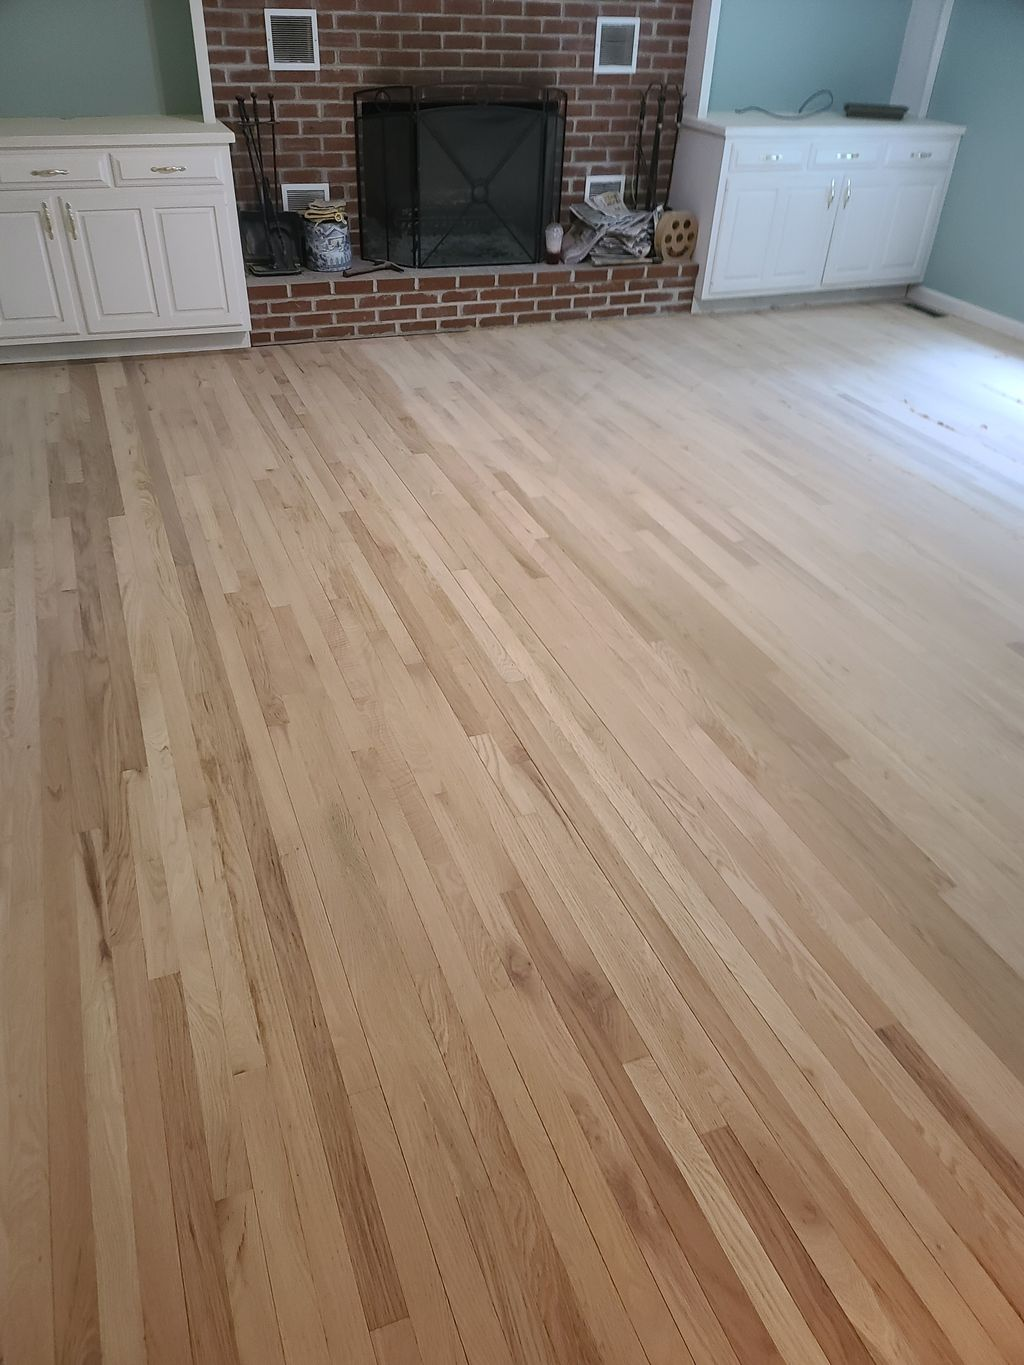 Oak hardwood unfinished and stained